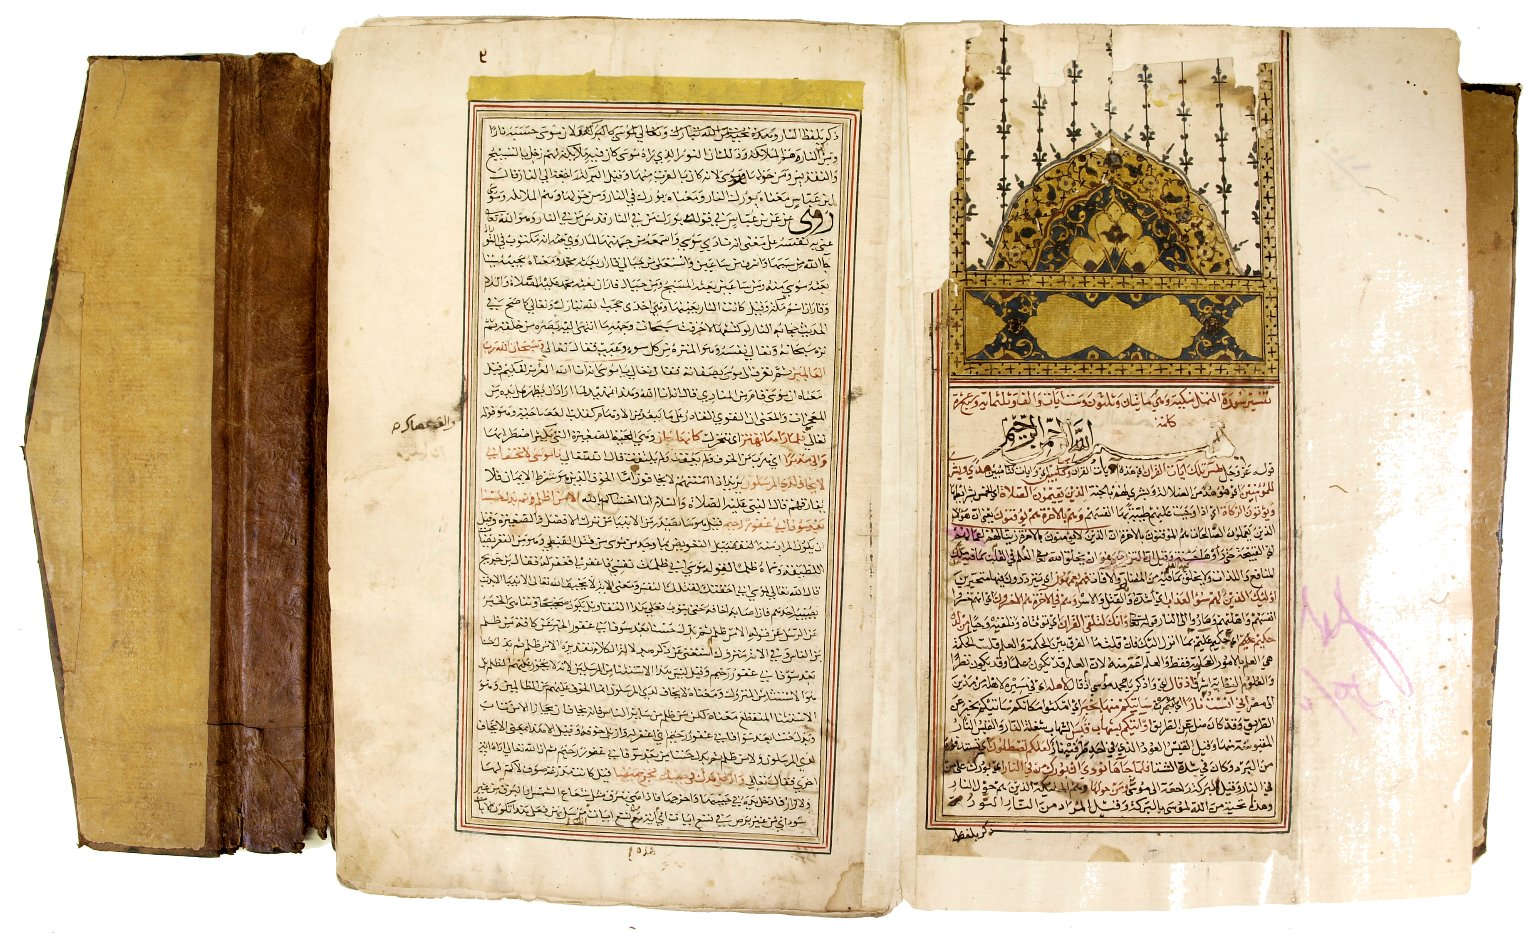 Multi-page manuscript with arabic writing and an elaborate black and gold decoration on the right-hand side